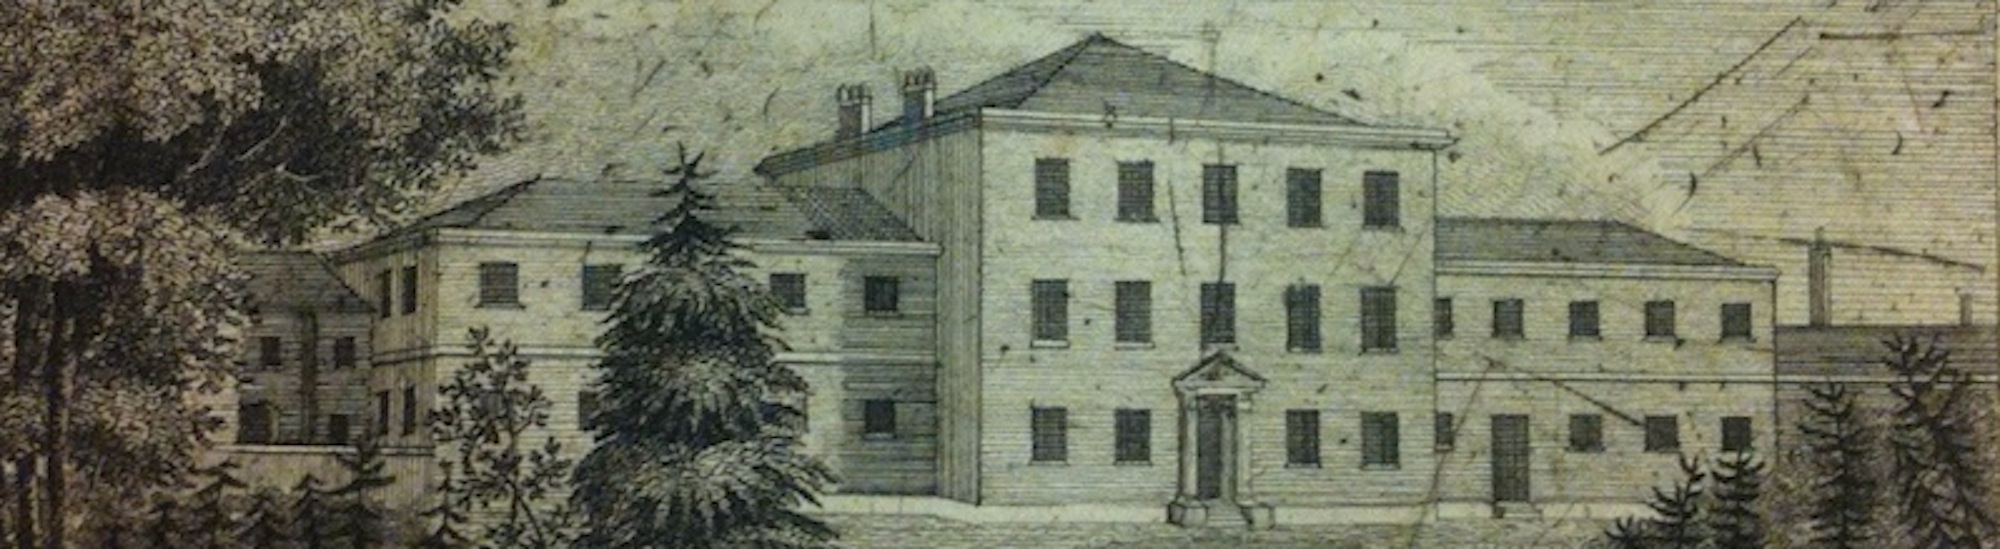 etching of York Retreat